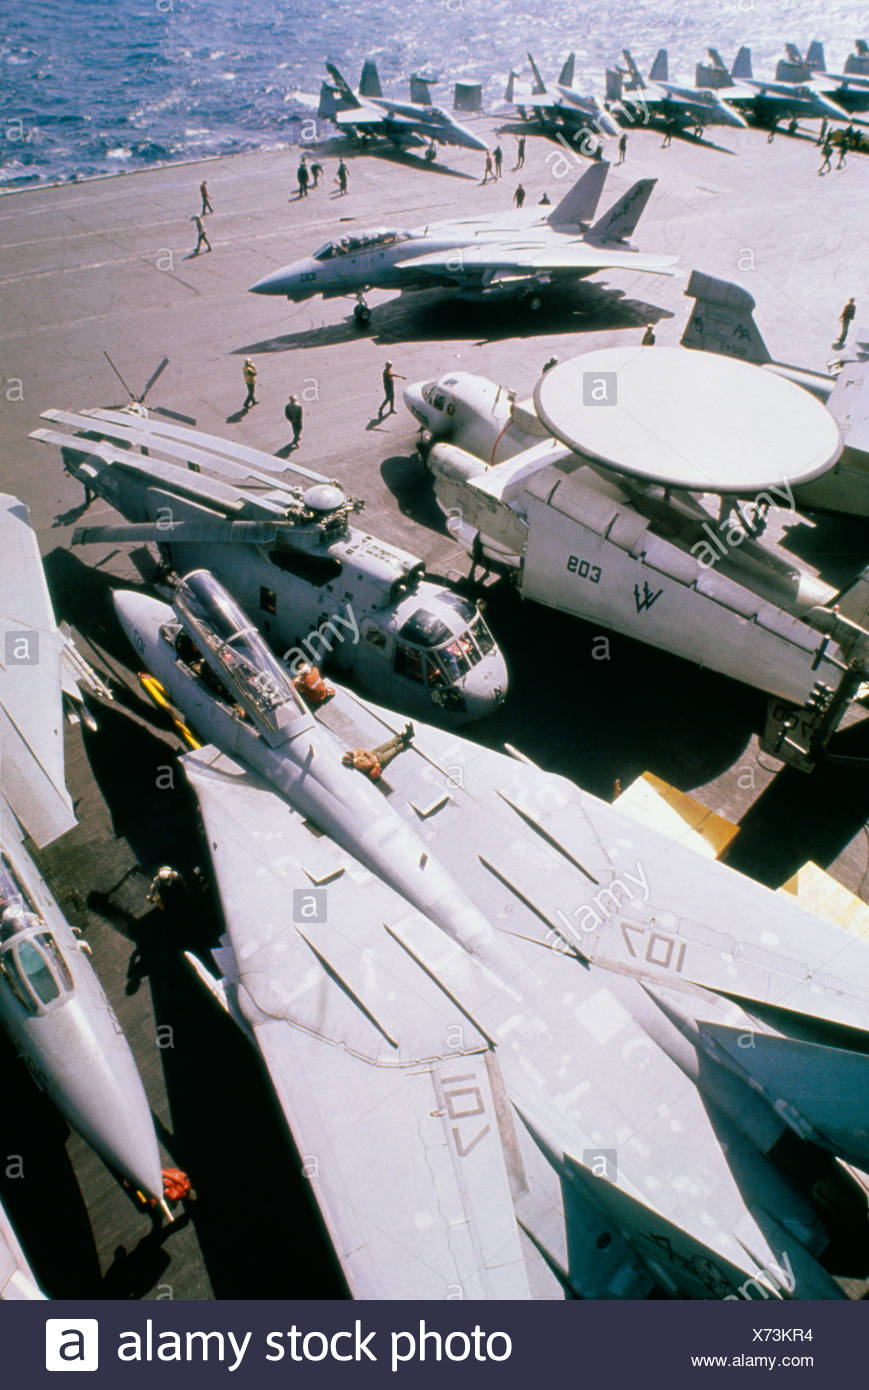 High angle view military aircraft on an aircraft carrier in Red Sea during Operation Desert Storm F-14A Tomcat E-2C Hawkeye - Stock Image